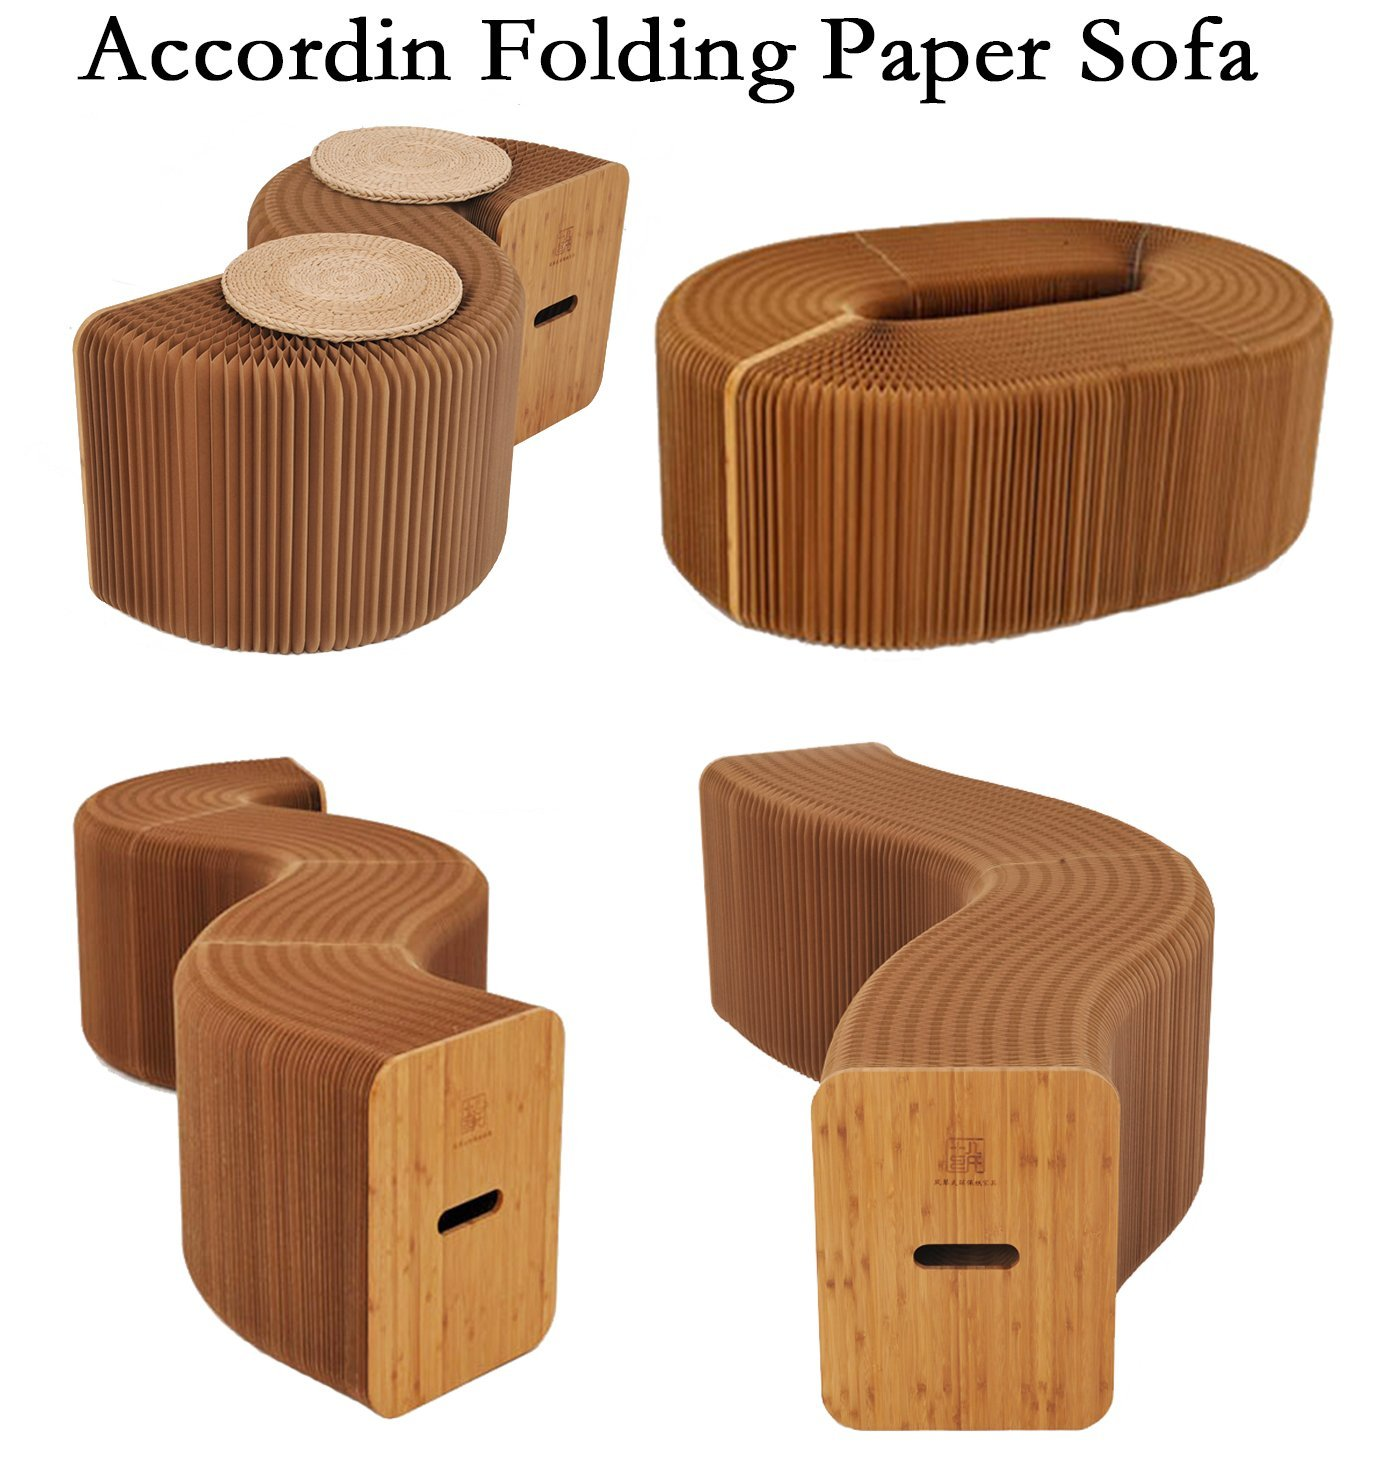 Home furniture softeating modern design accordin folding for Sofa stool design